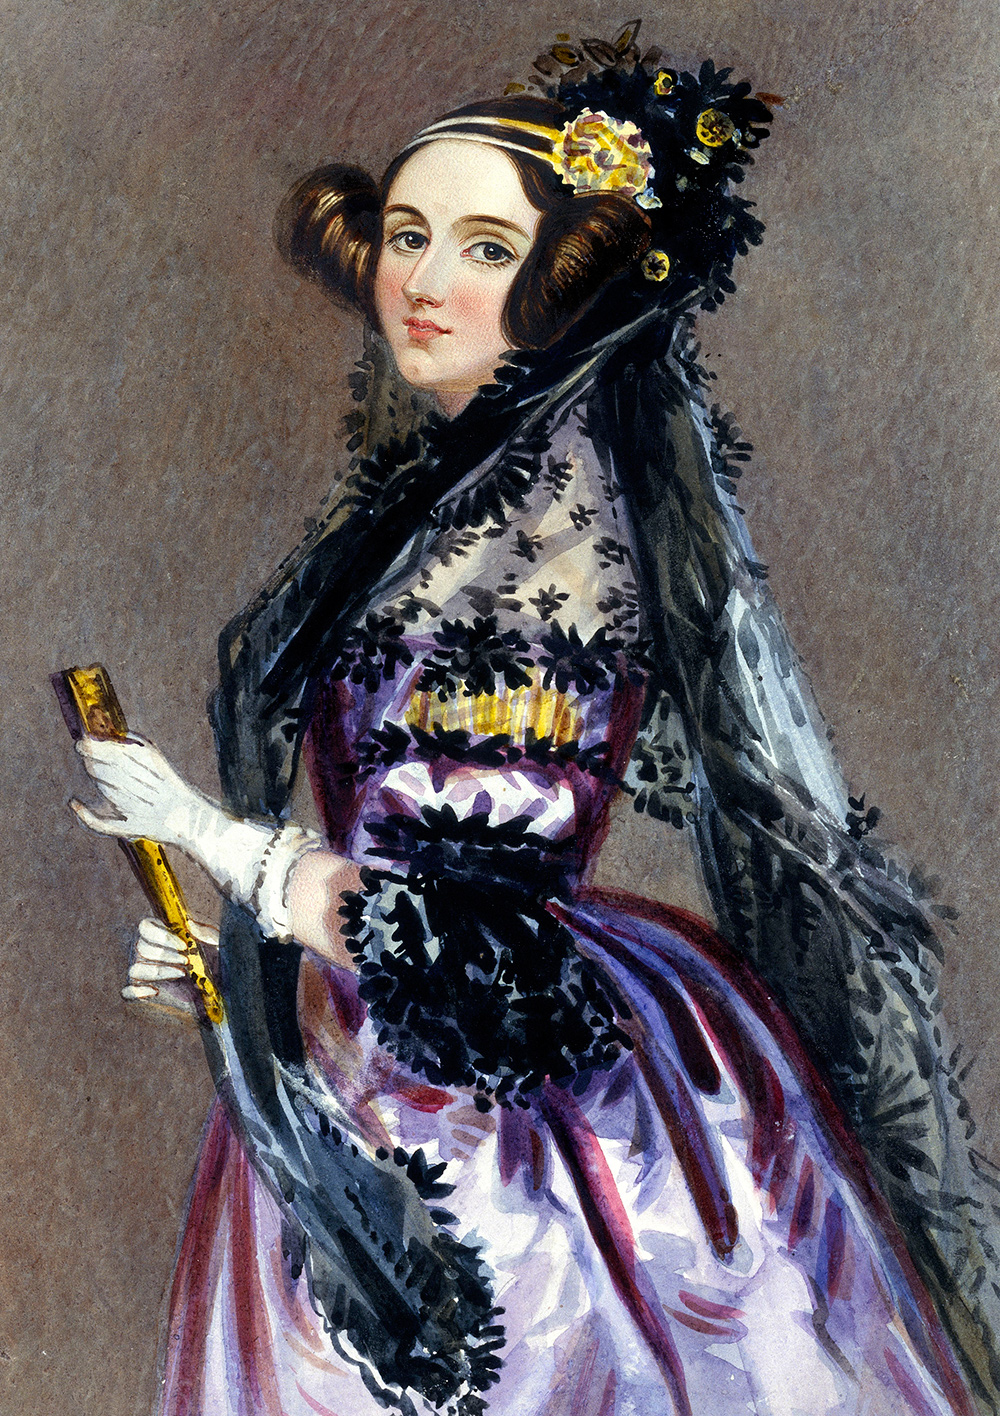 Ada Lovelace was an unconventional mathematician whose conceptual breakthrough revealed the potential power of computers